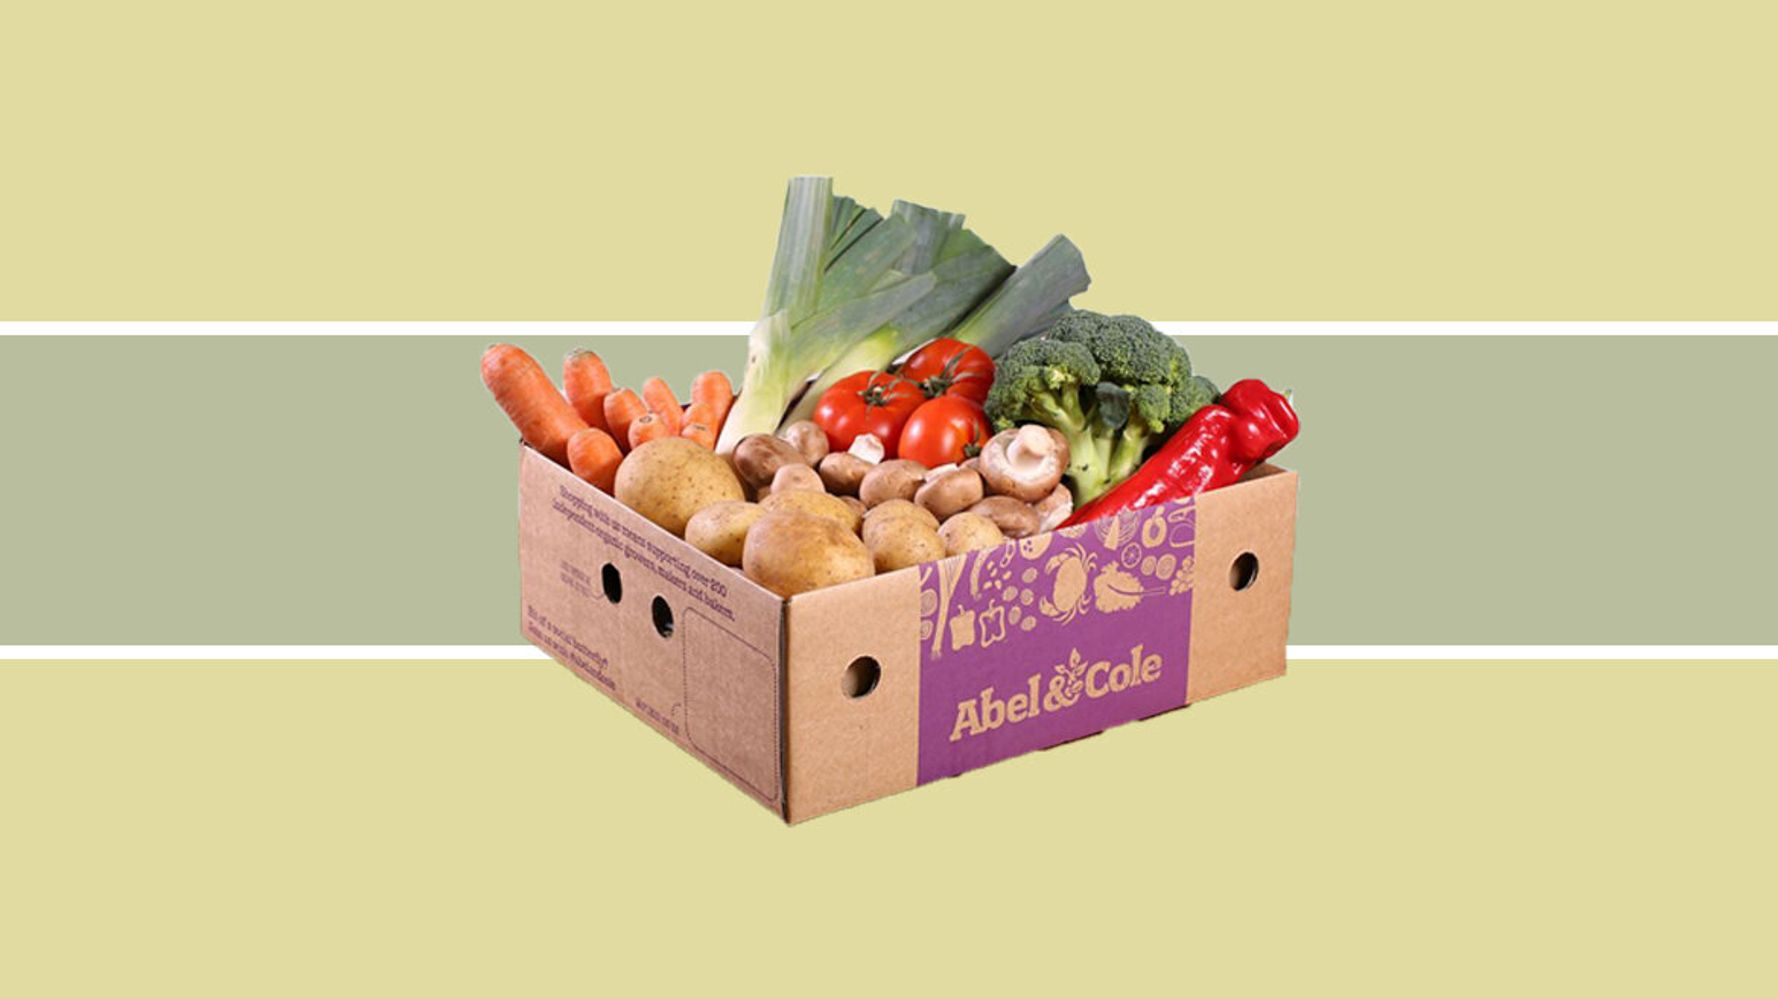 The Best Veg Boxes In 2020 For A Healthier, More Sustainable Diet